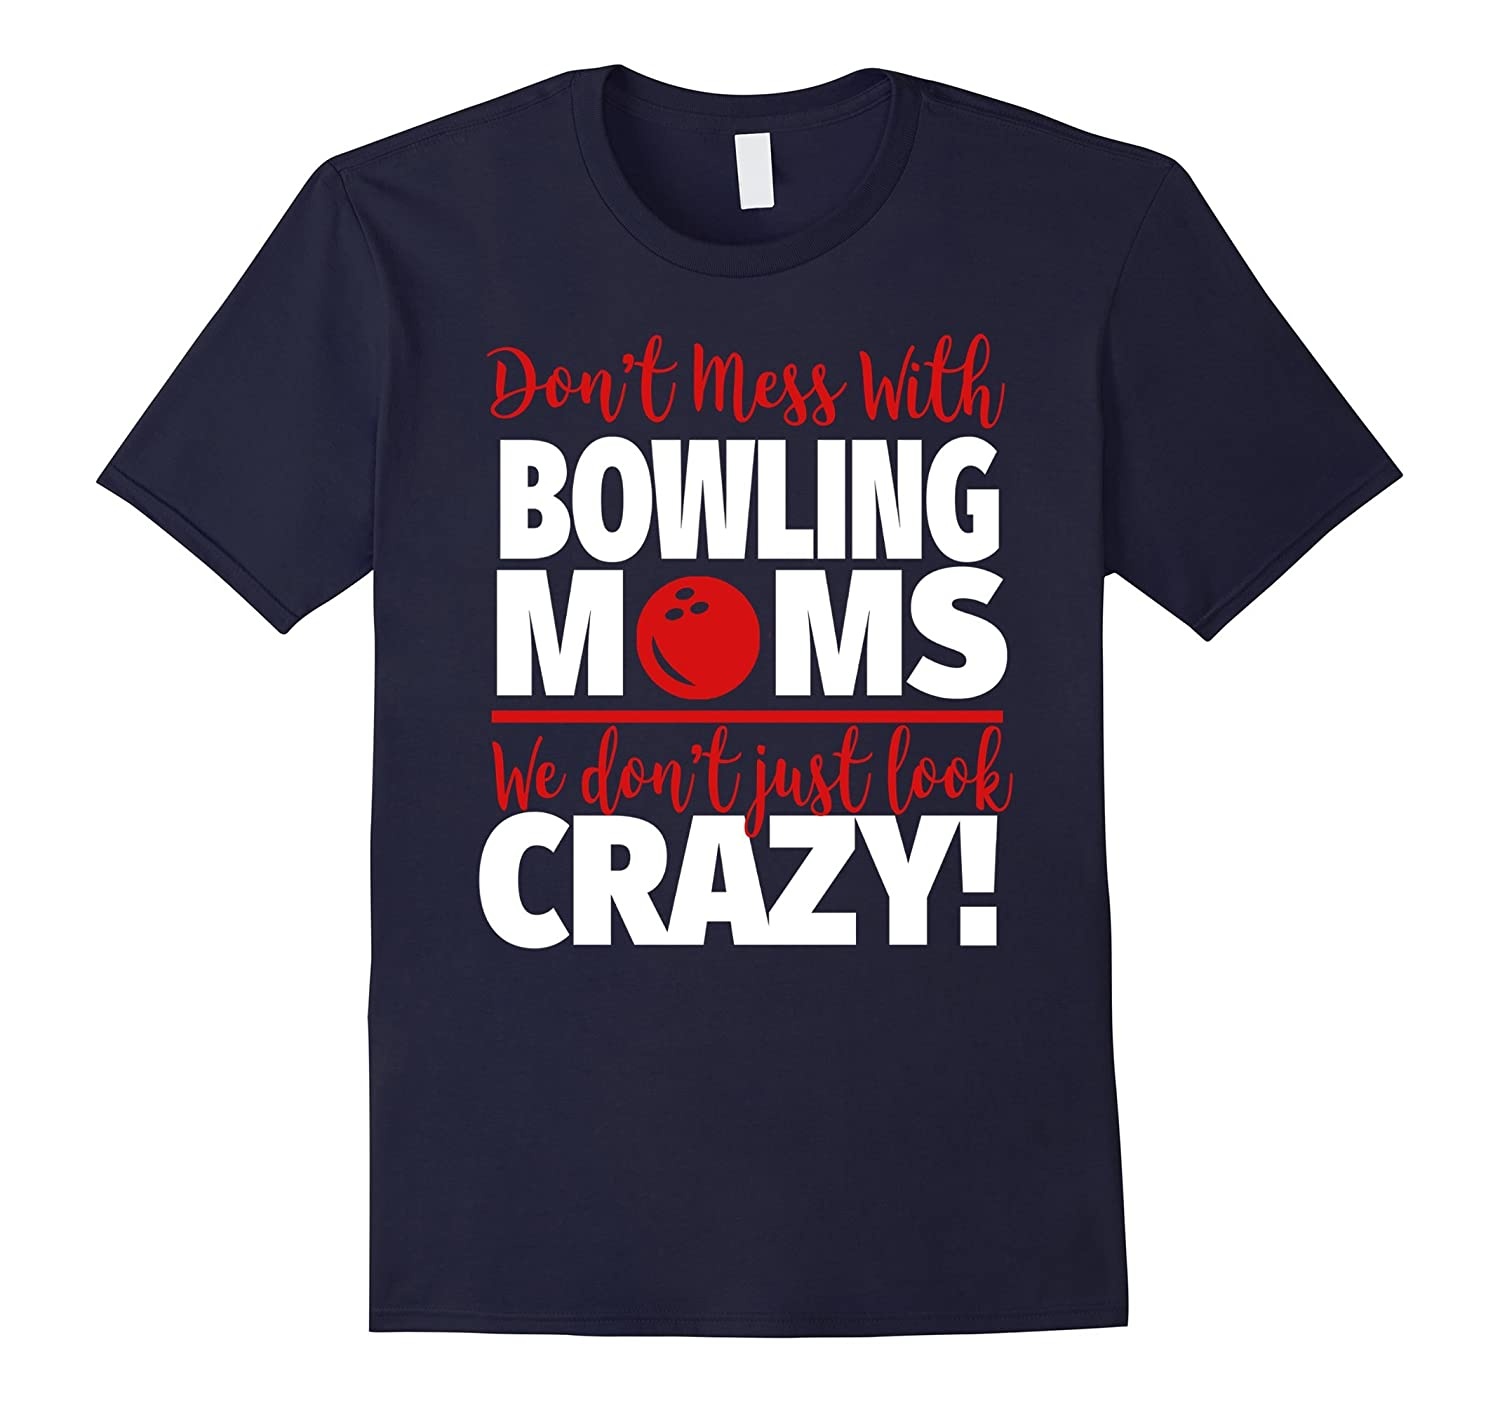 Crazy Bowling Mom T-Shirt – We Don't Just Look Crazy-Teeae